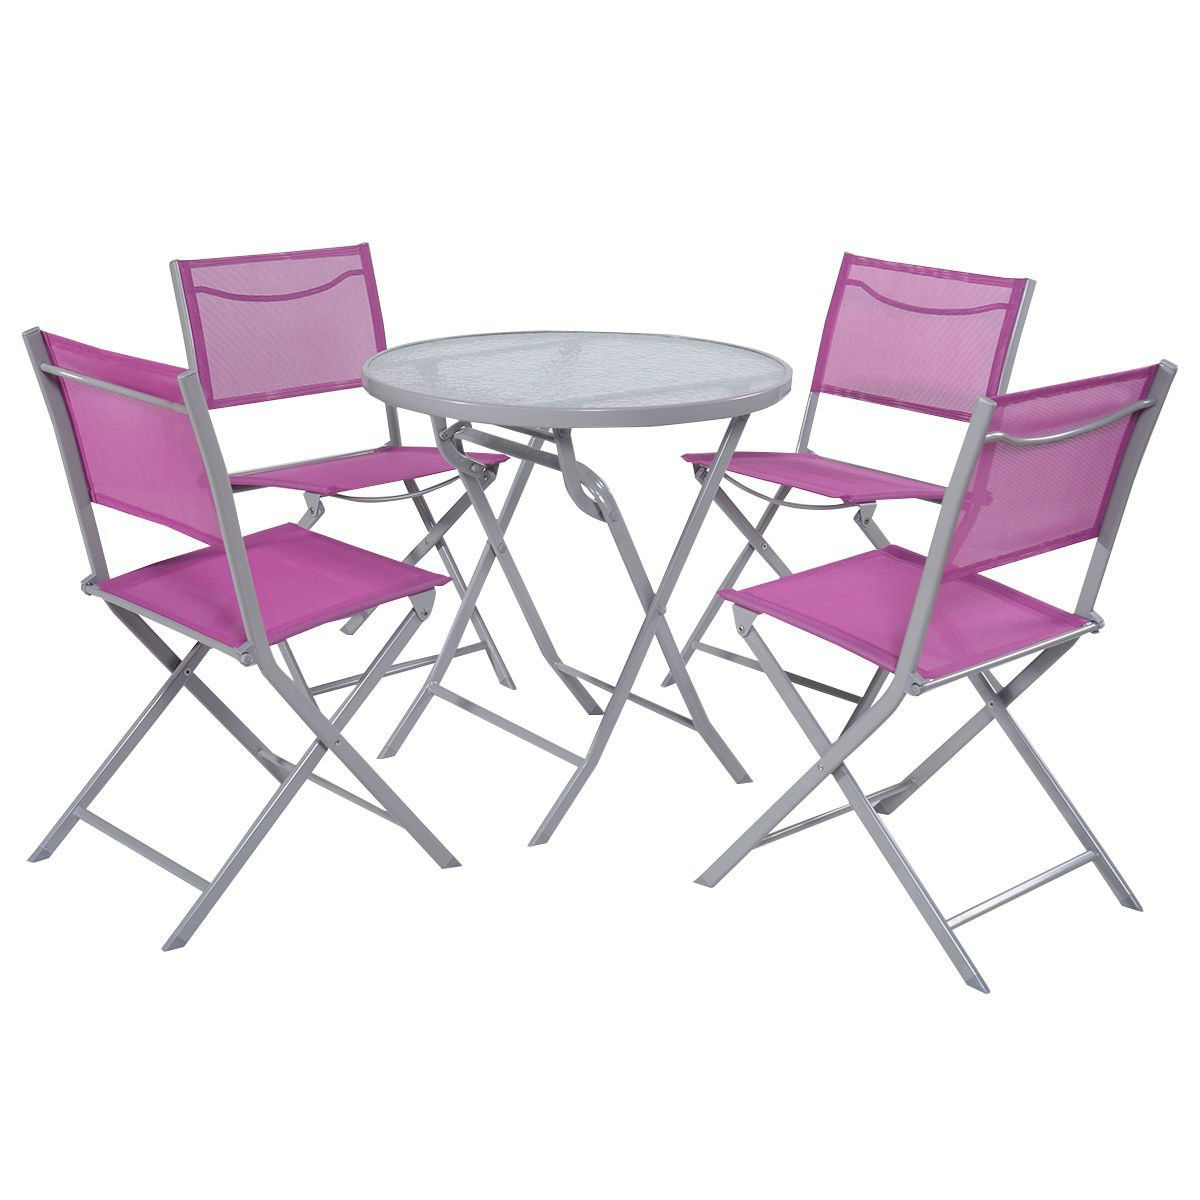 Patio Folding Chairs Pink Purple Rose Red 5 Piece Folding Chairs And Table Outdoor Patio Furniture Set